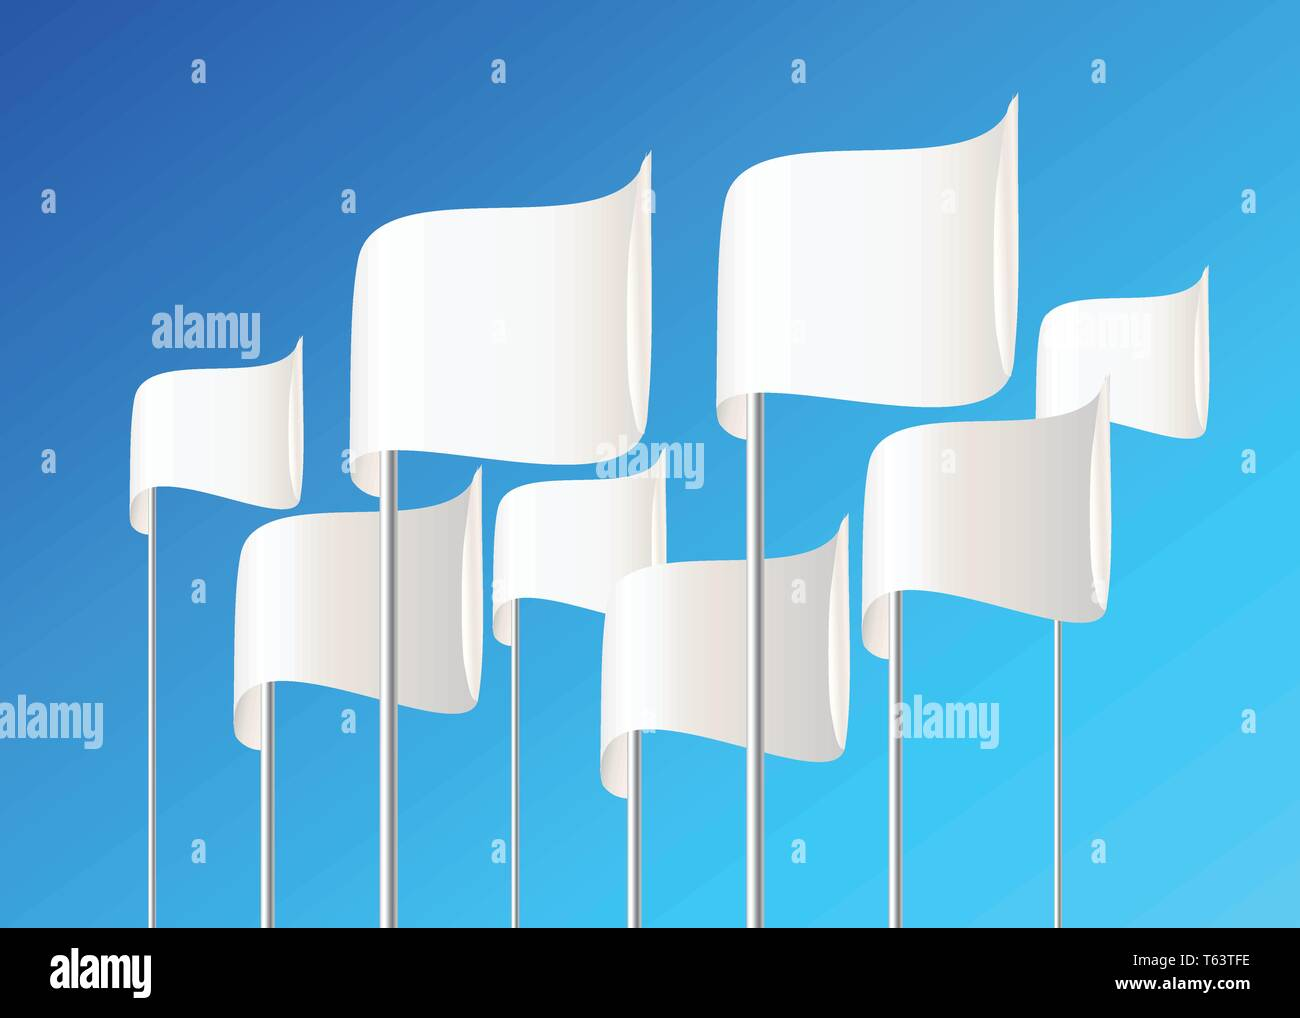 White vector flags on blue background. - Stock Vector